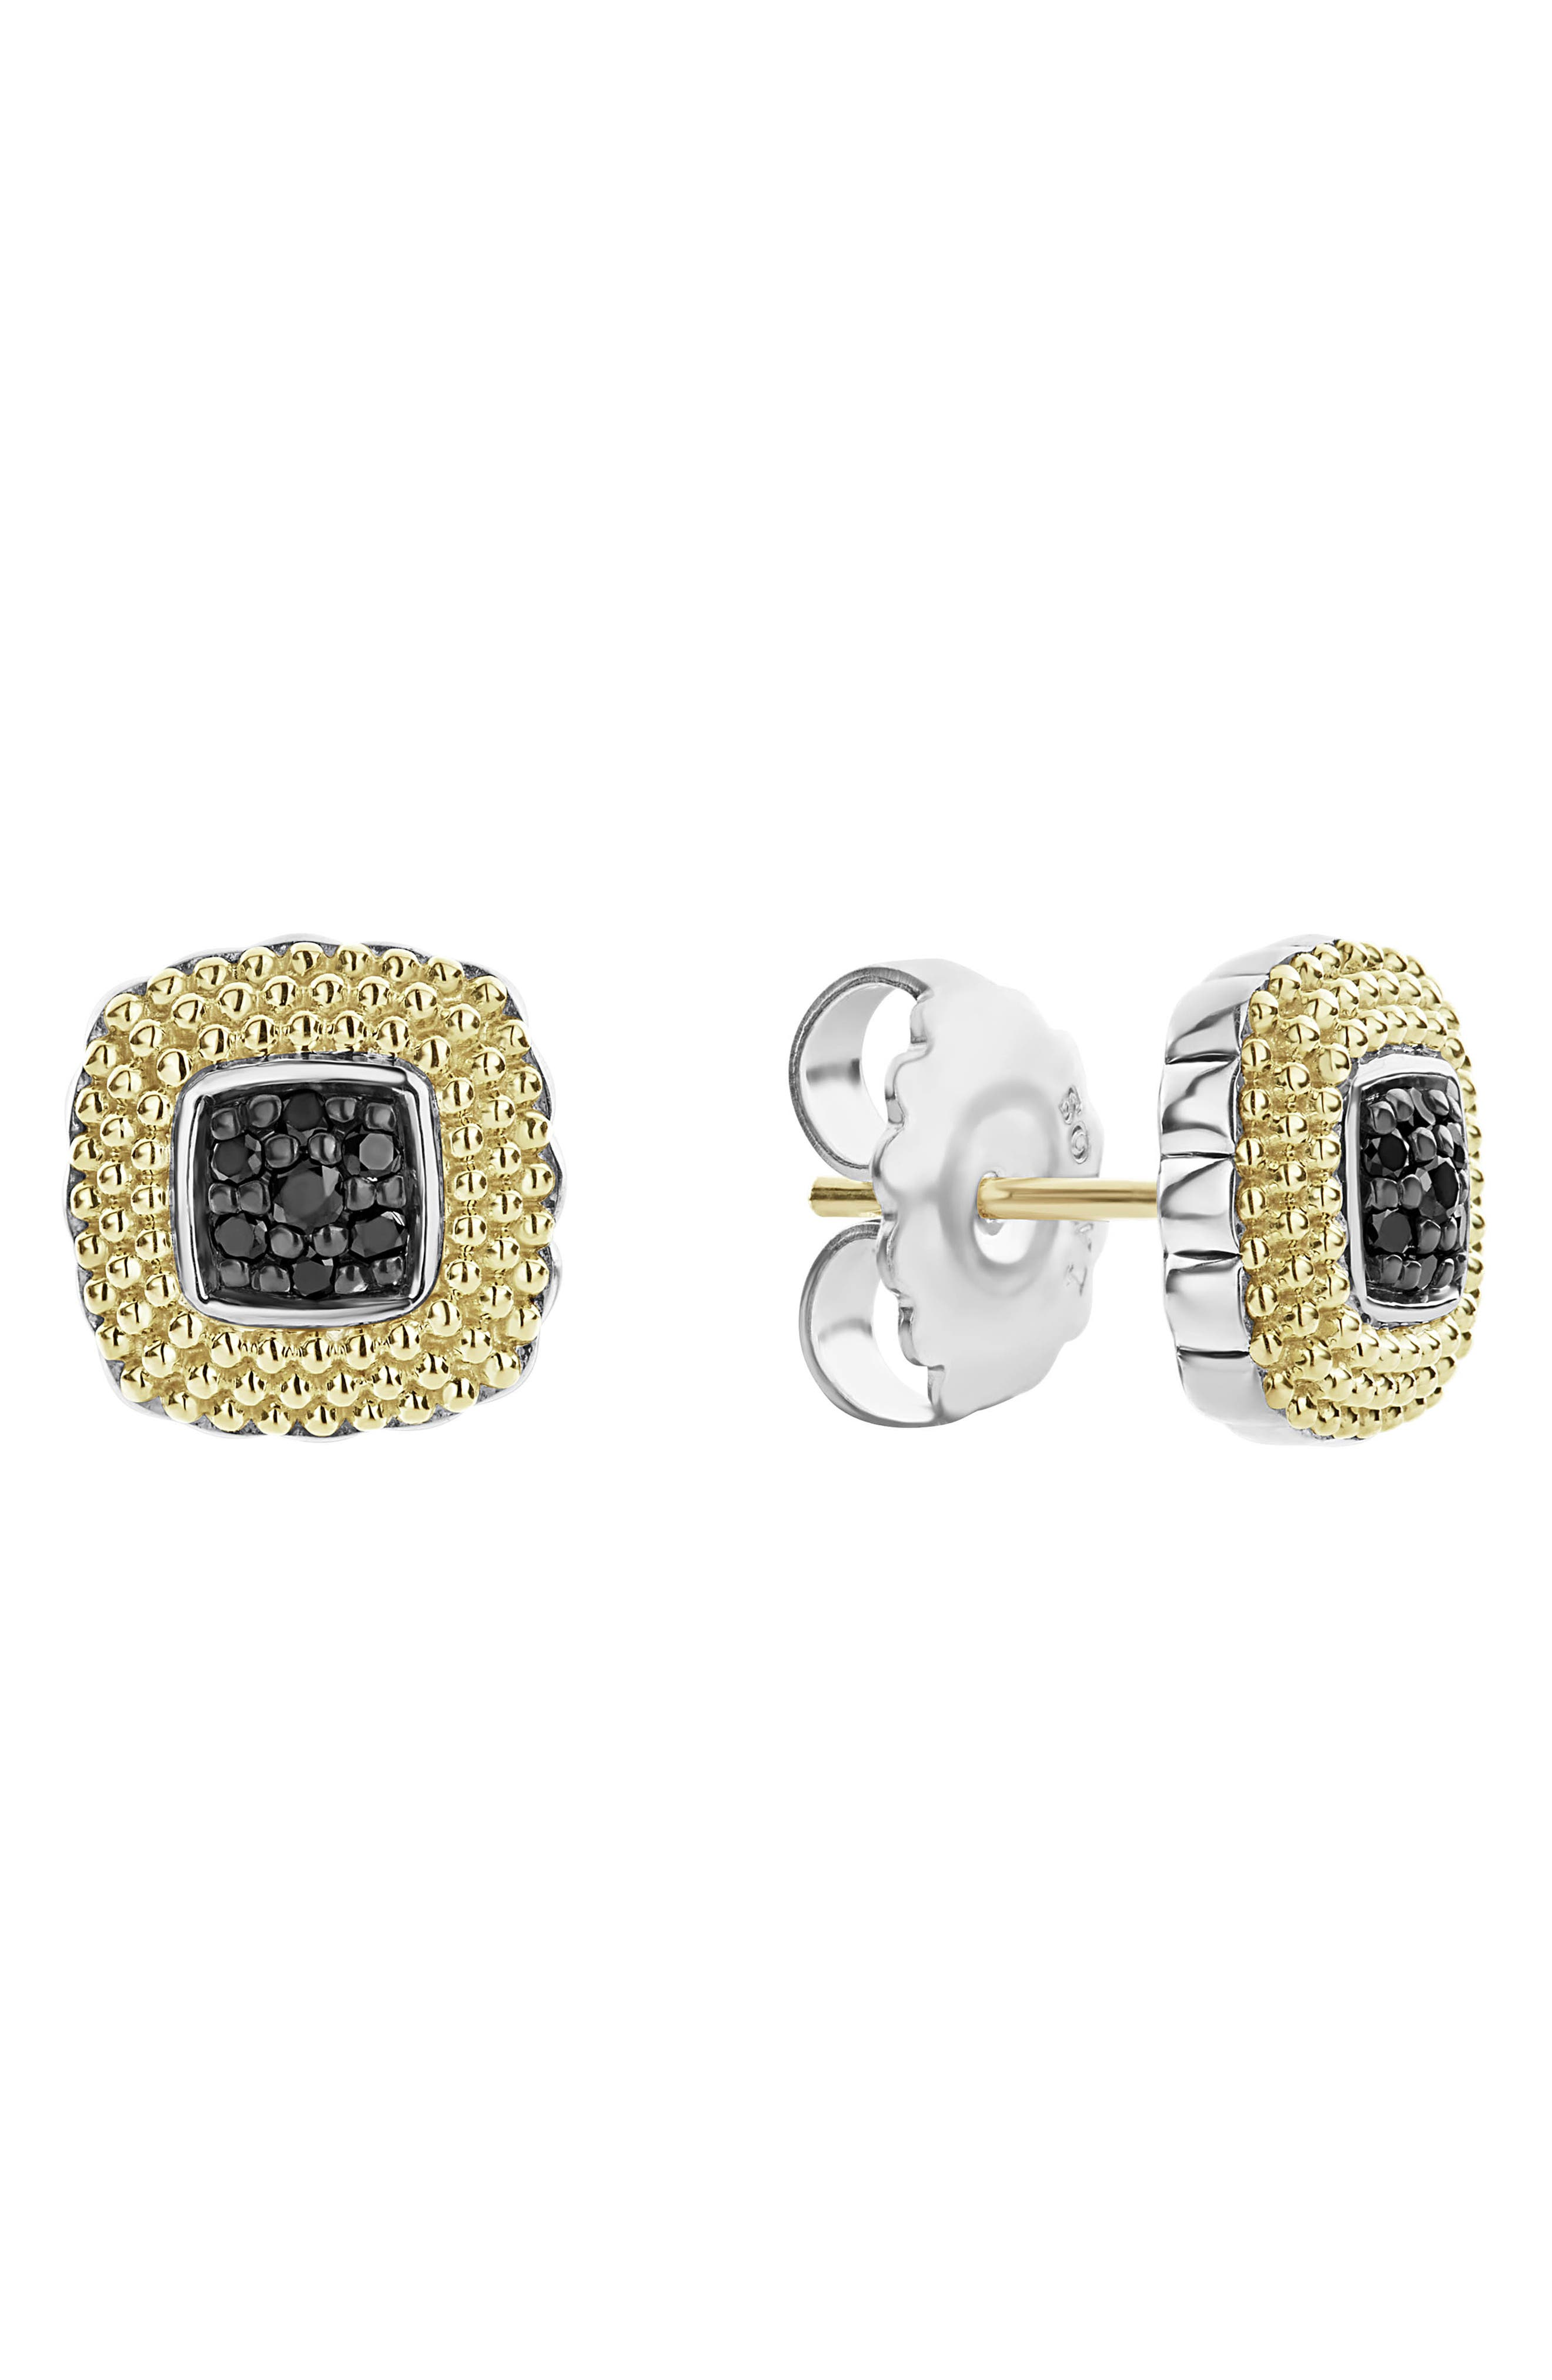 Diamond Lux Black Diamond Square Stud Earrings,                             Alternate thumbnail 3, color,                             SILVER/ GOLD/ BLACK DIAMOND